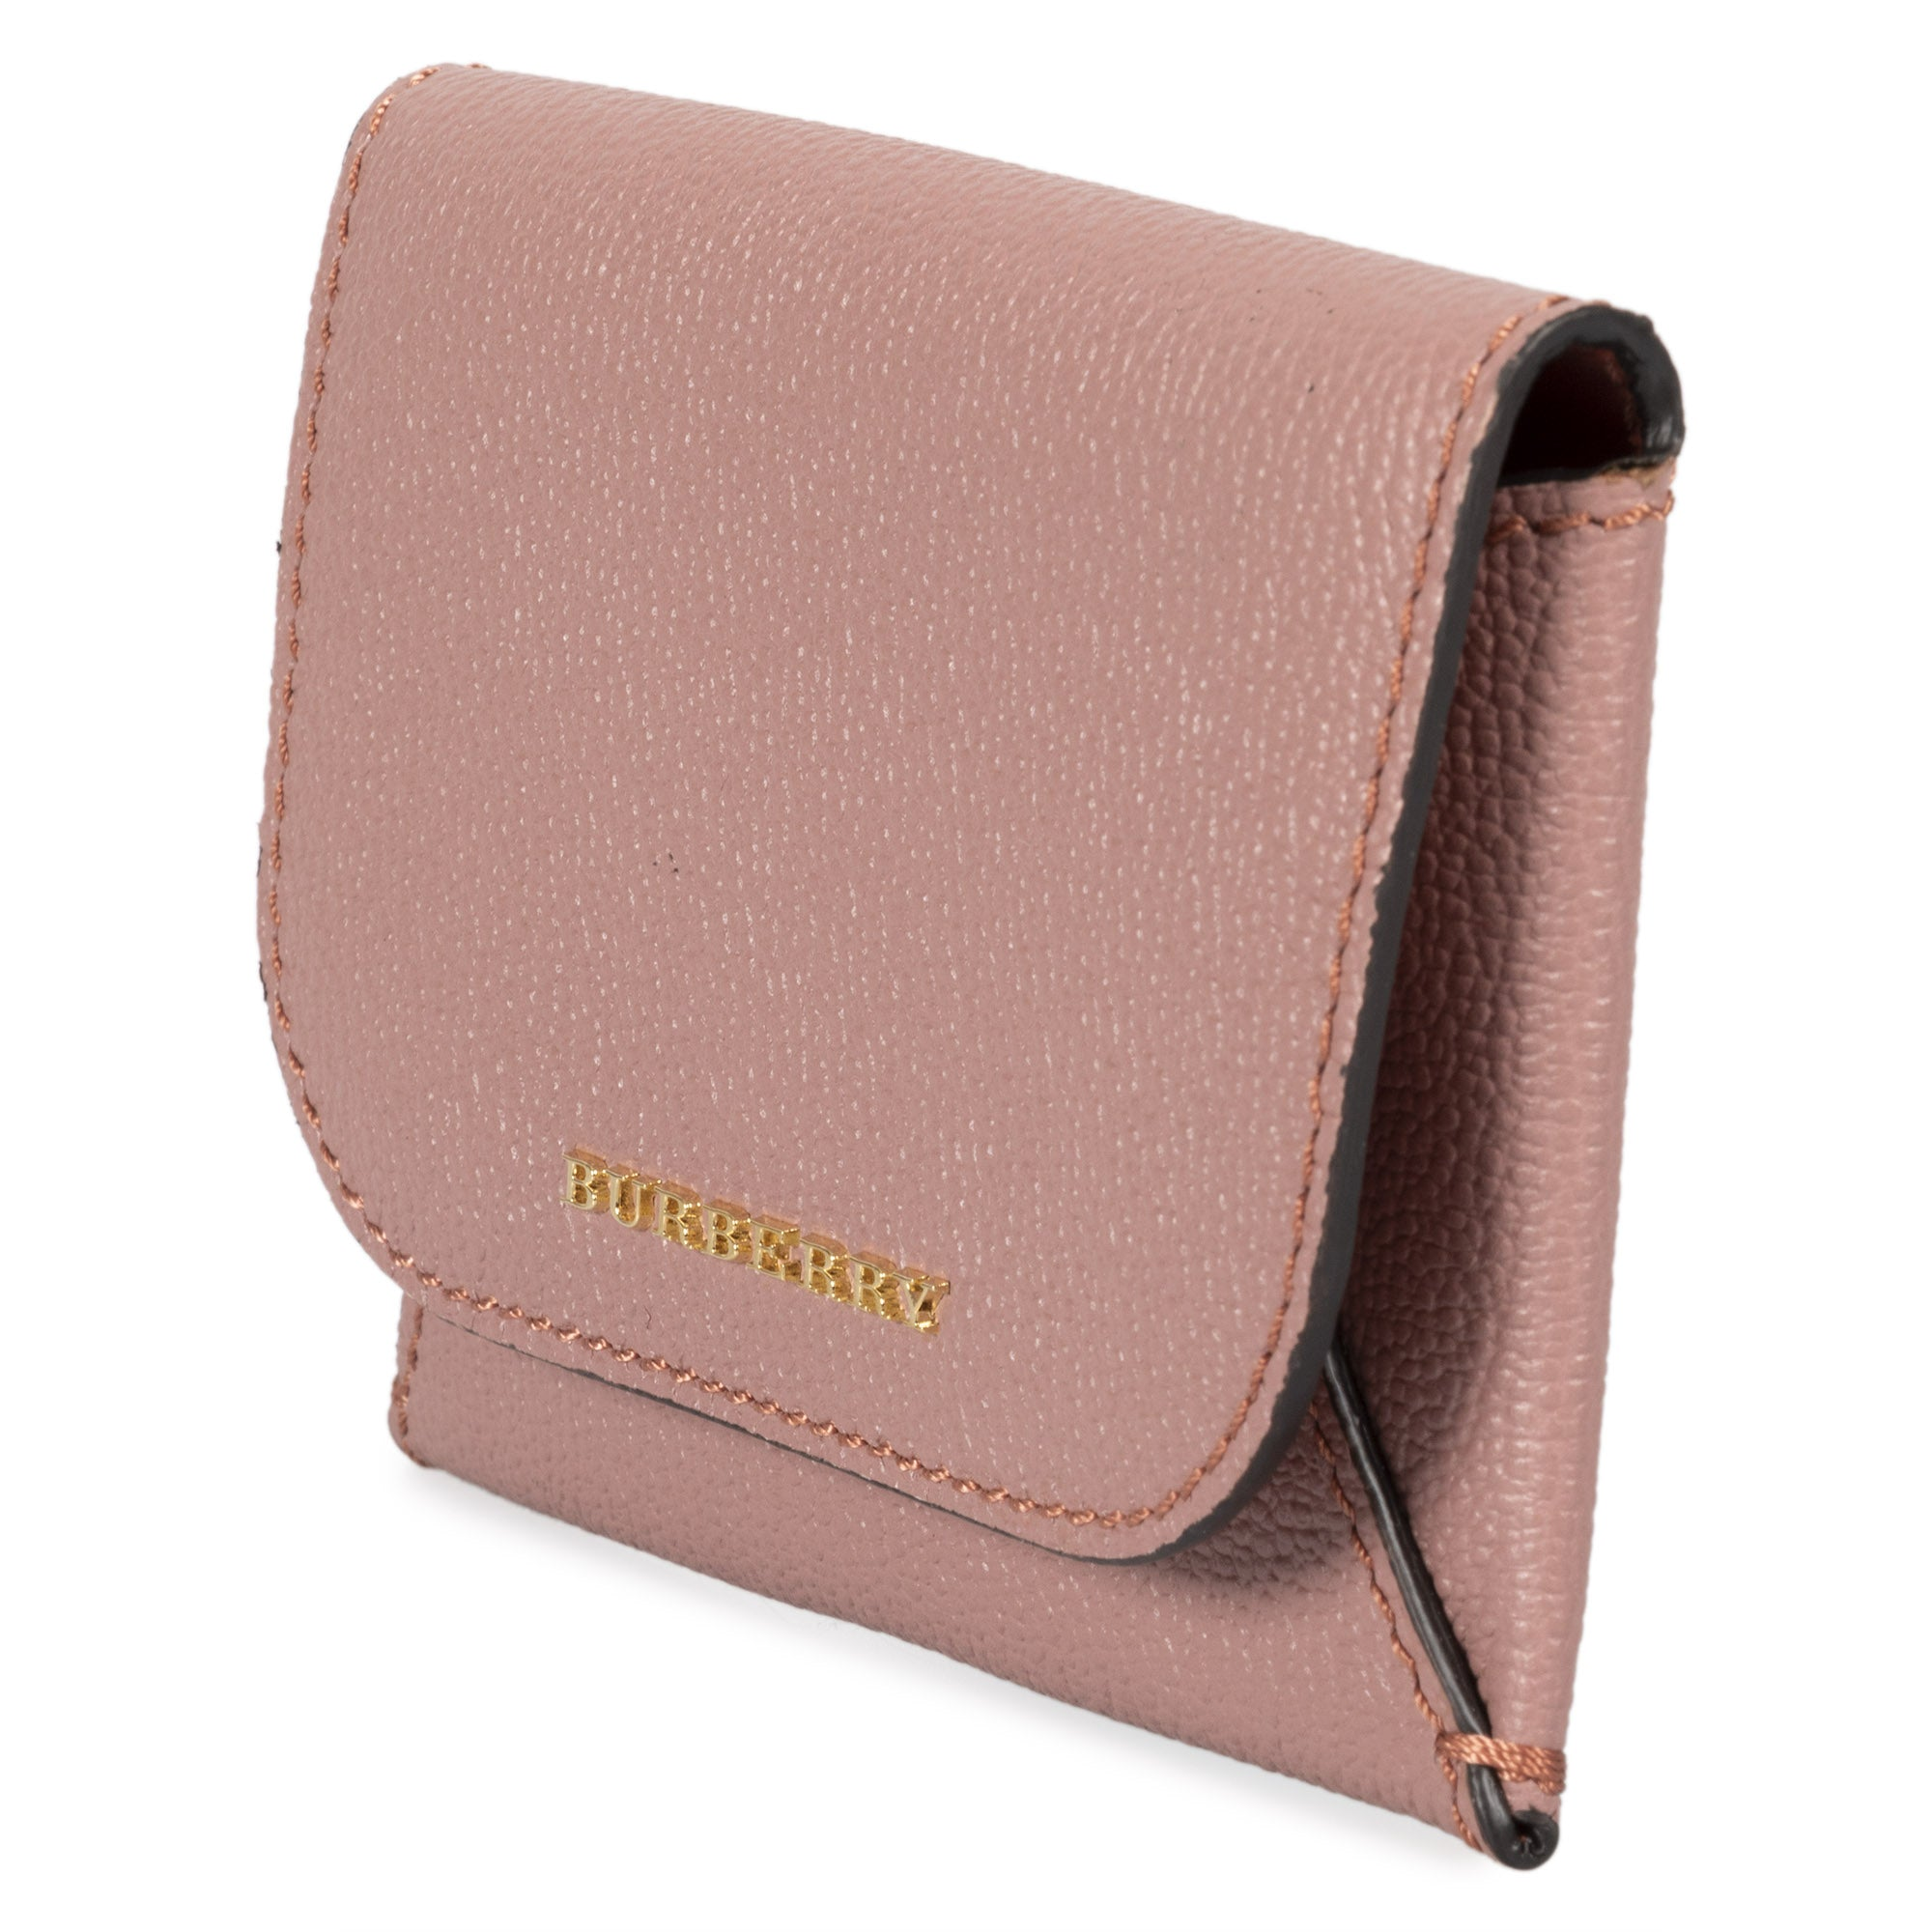 Burberry Burberry Haymarket Mayfield Leather Card Case in Dark Pink